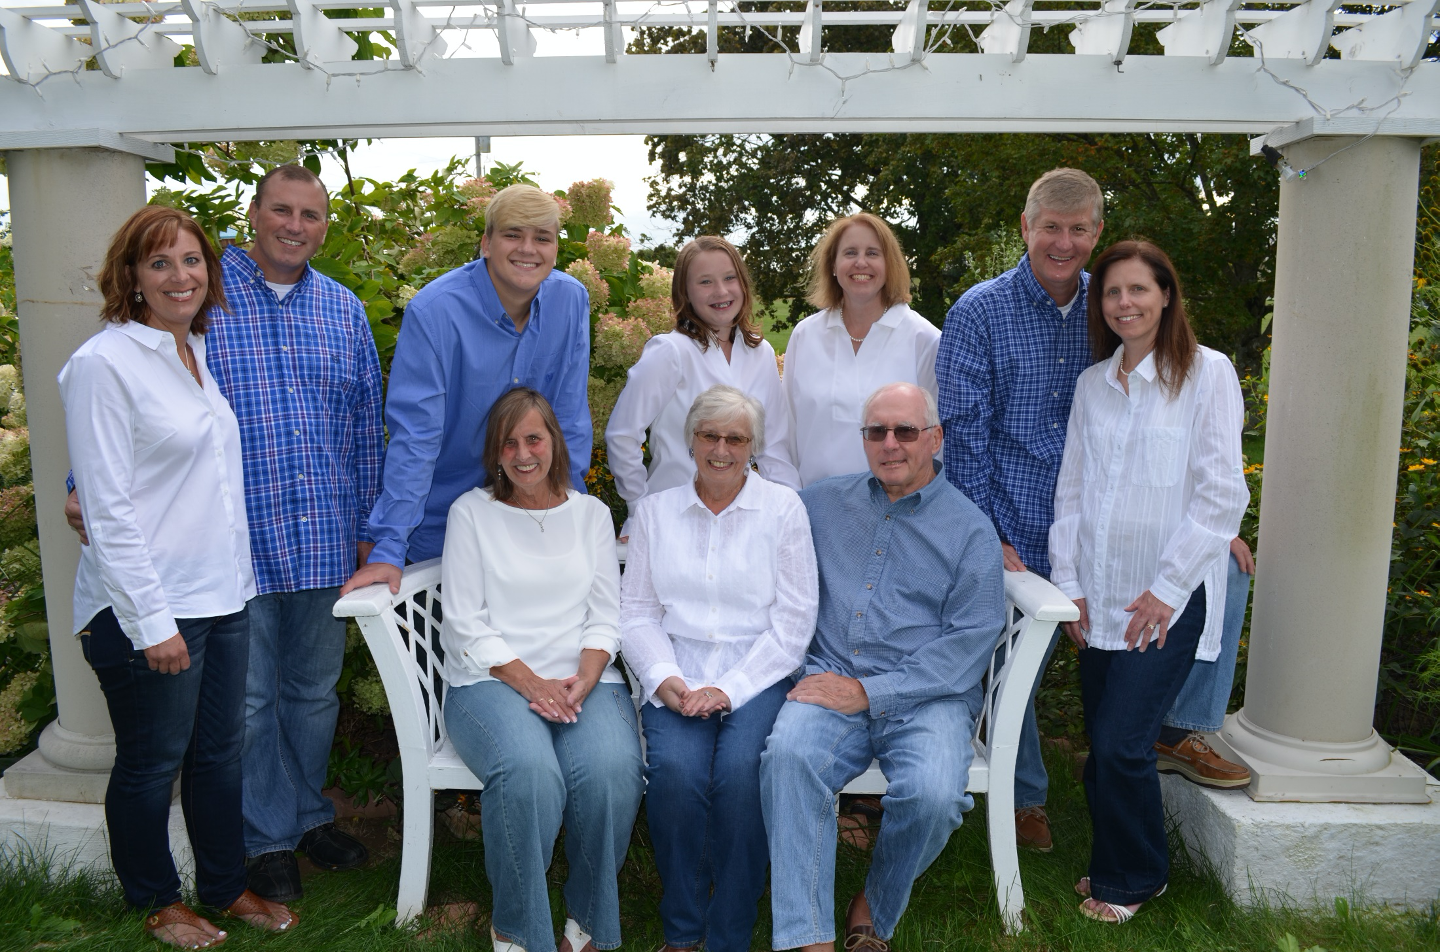 Family Group of of ten outdoors posing for portrait, all wearing blue and white.